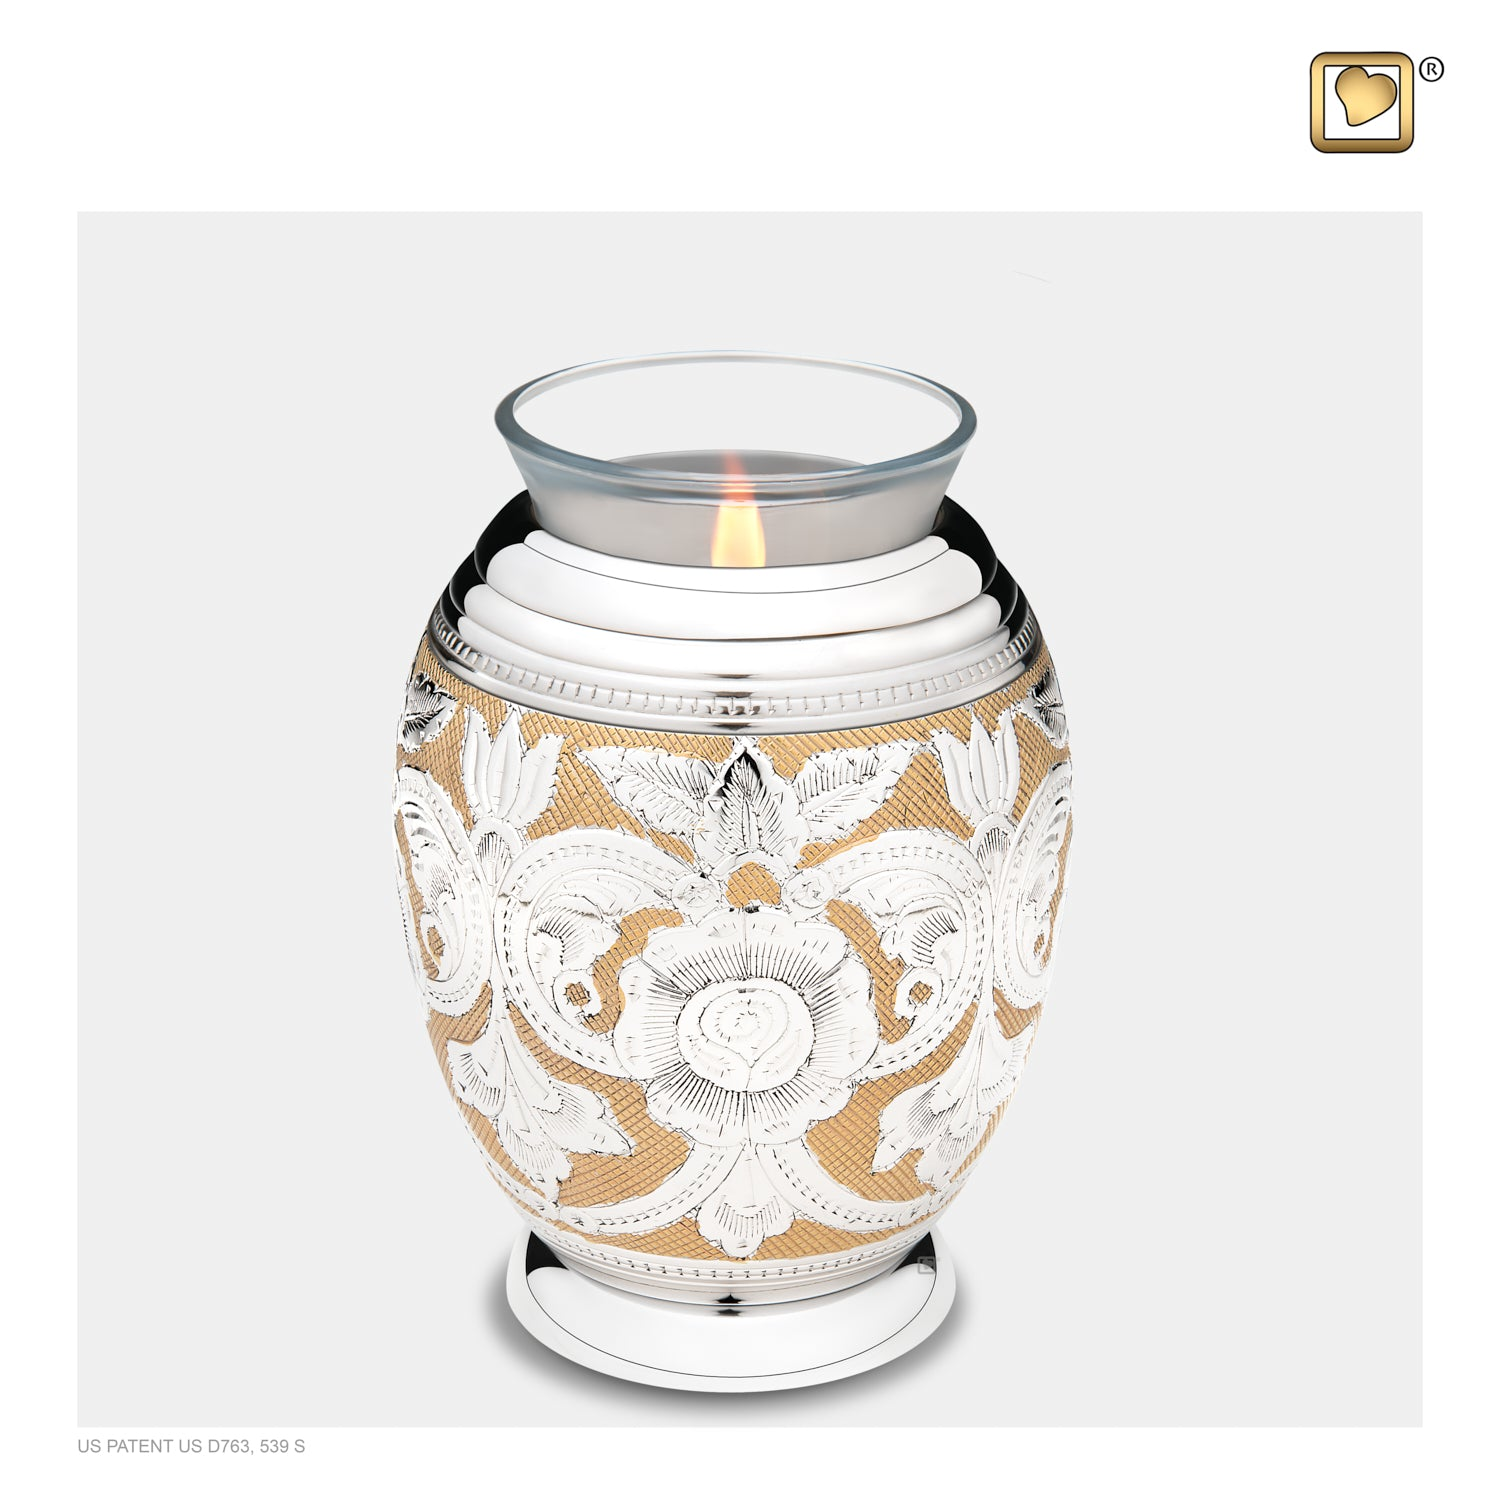 Tealight Ornate Floral Cremation Urn